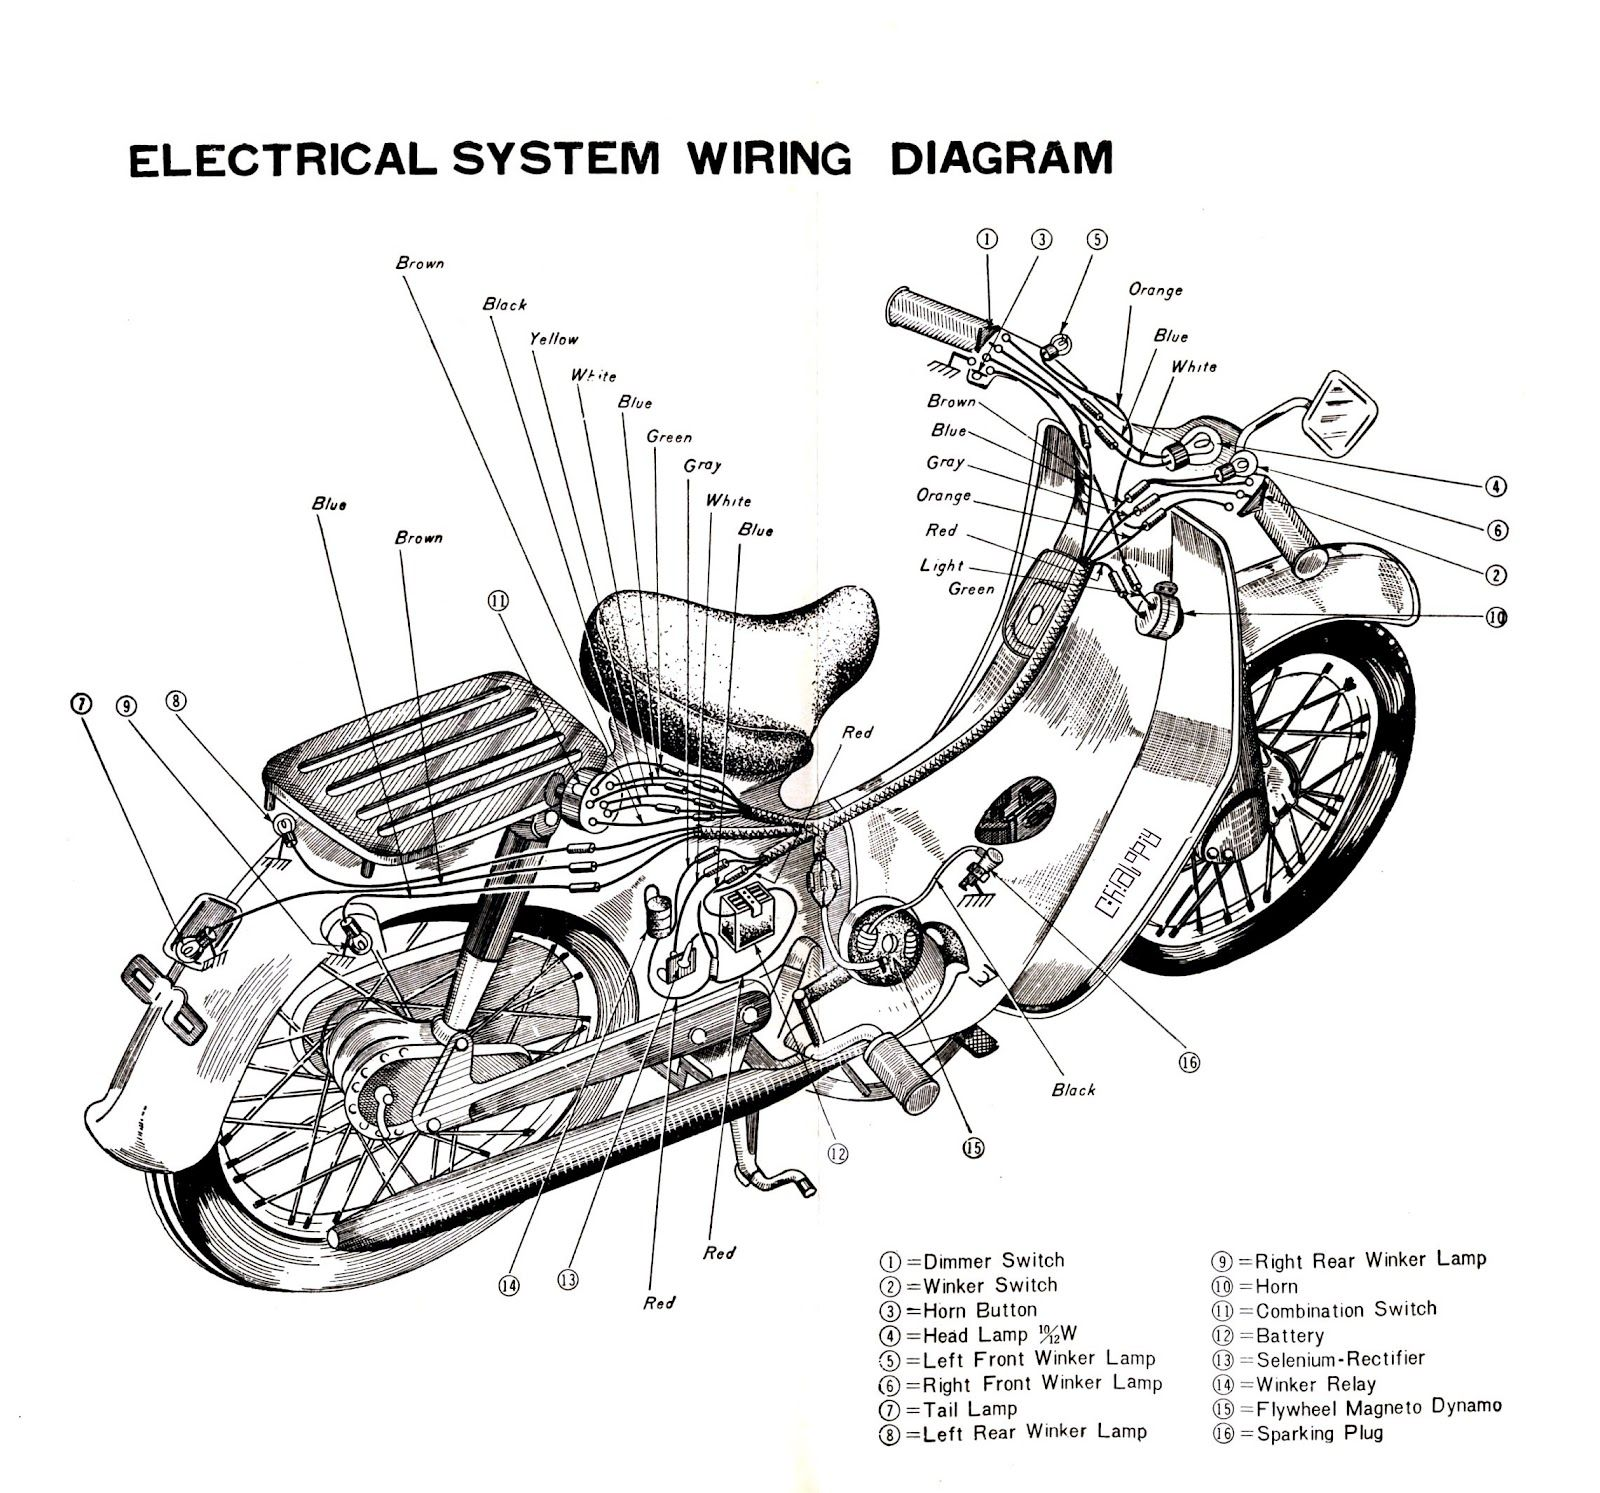 honda c100 wiring diagram honda image wiring diagram super club electric wiring diagram motorcycles on honda c100 wiring diagram